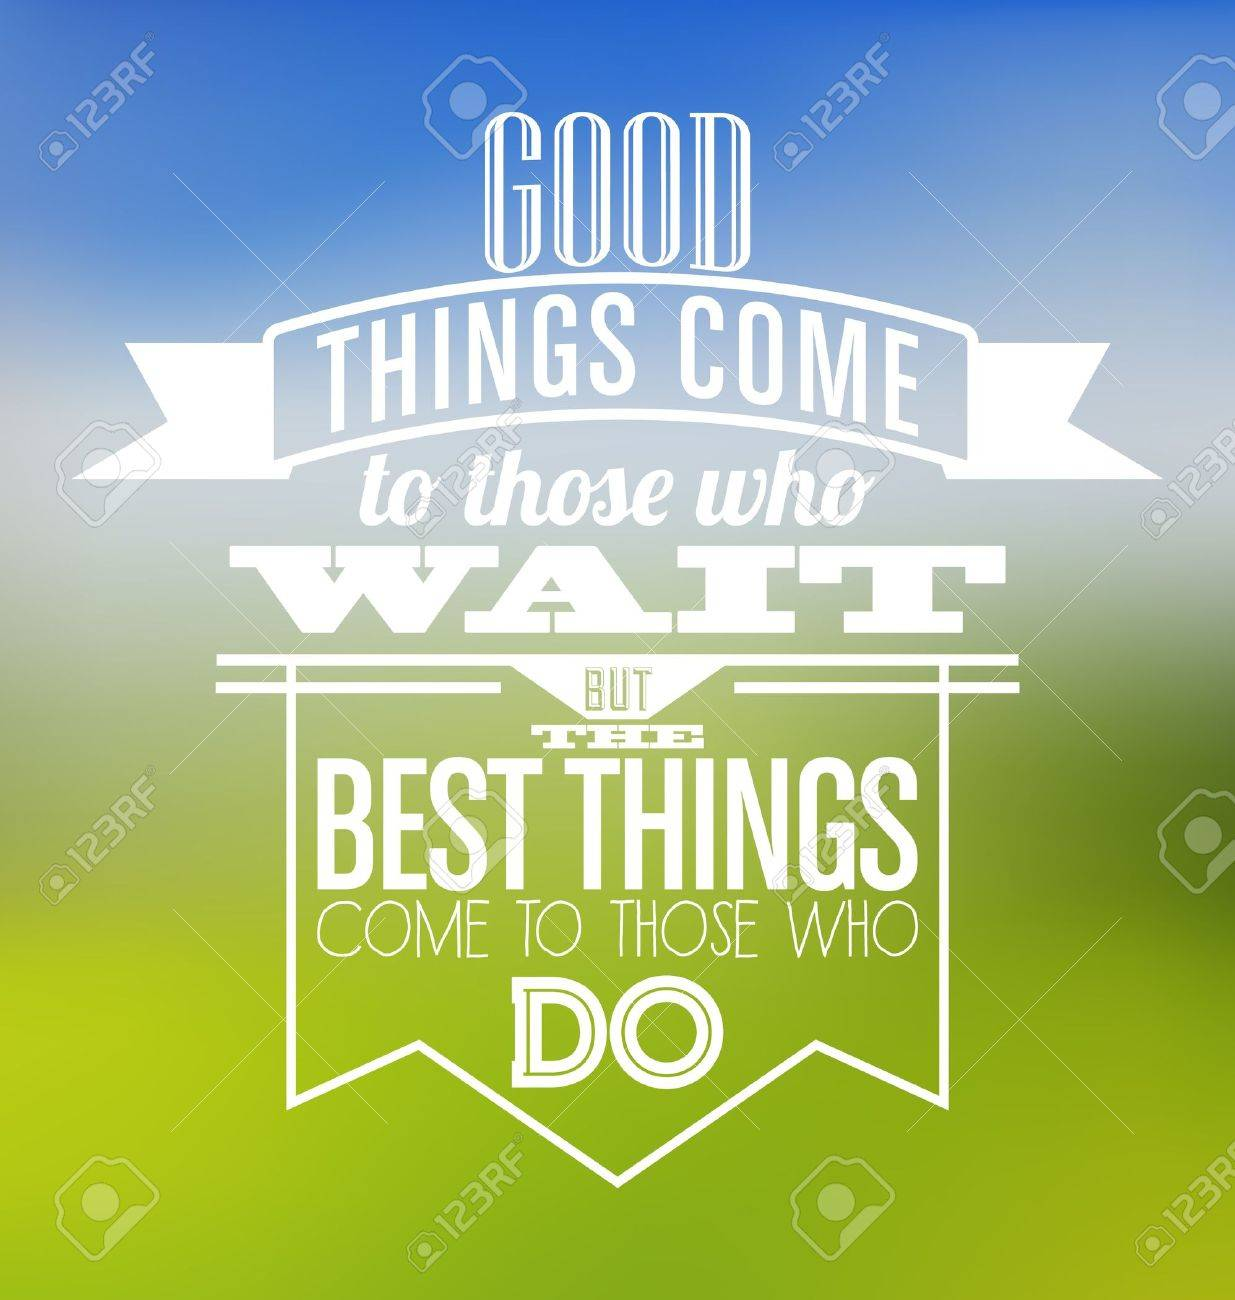 Poster design best - Typographic Poster Design Good Things Come To Those Who Wait But Best Things Come To